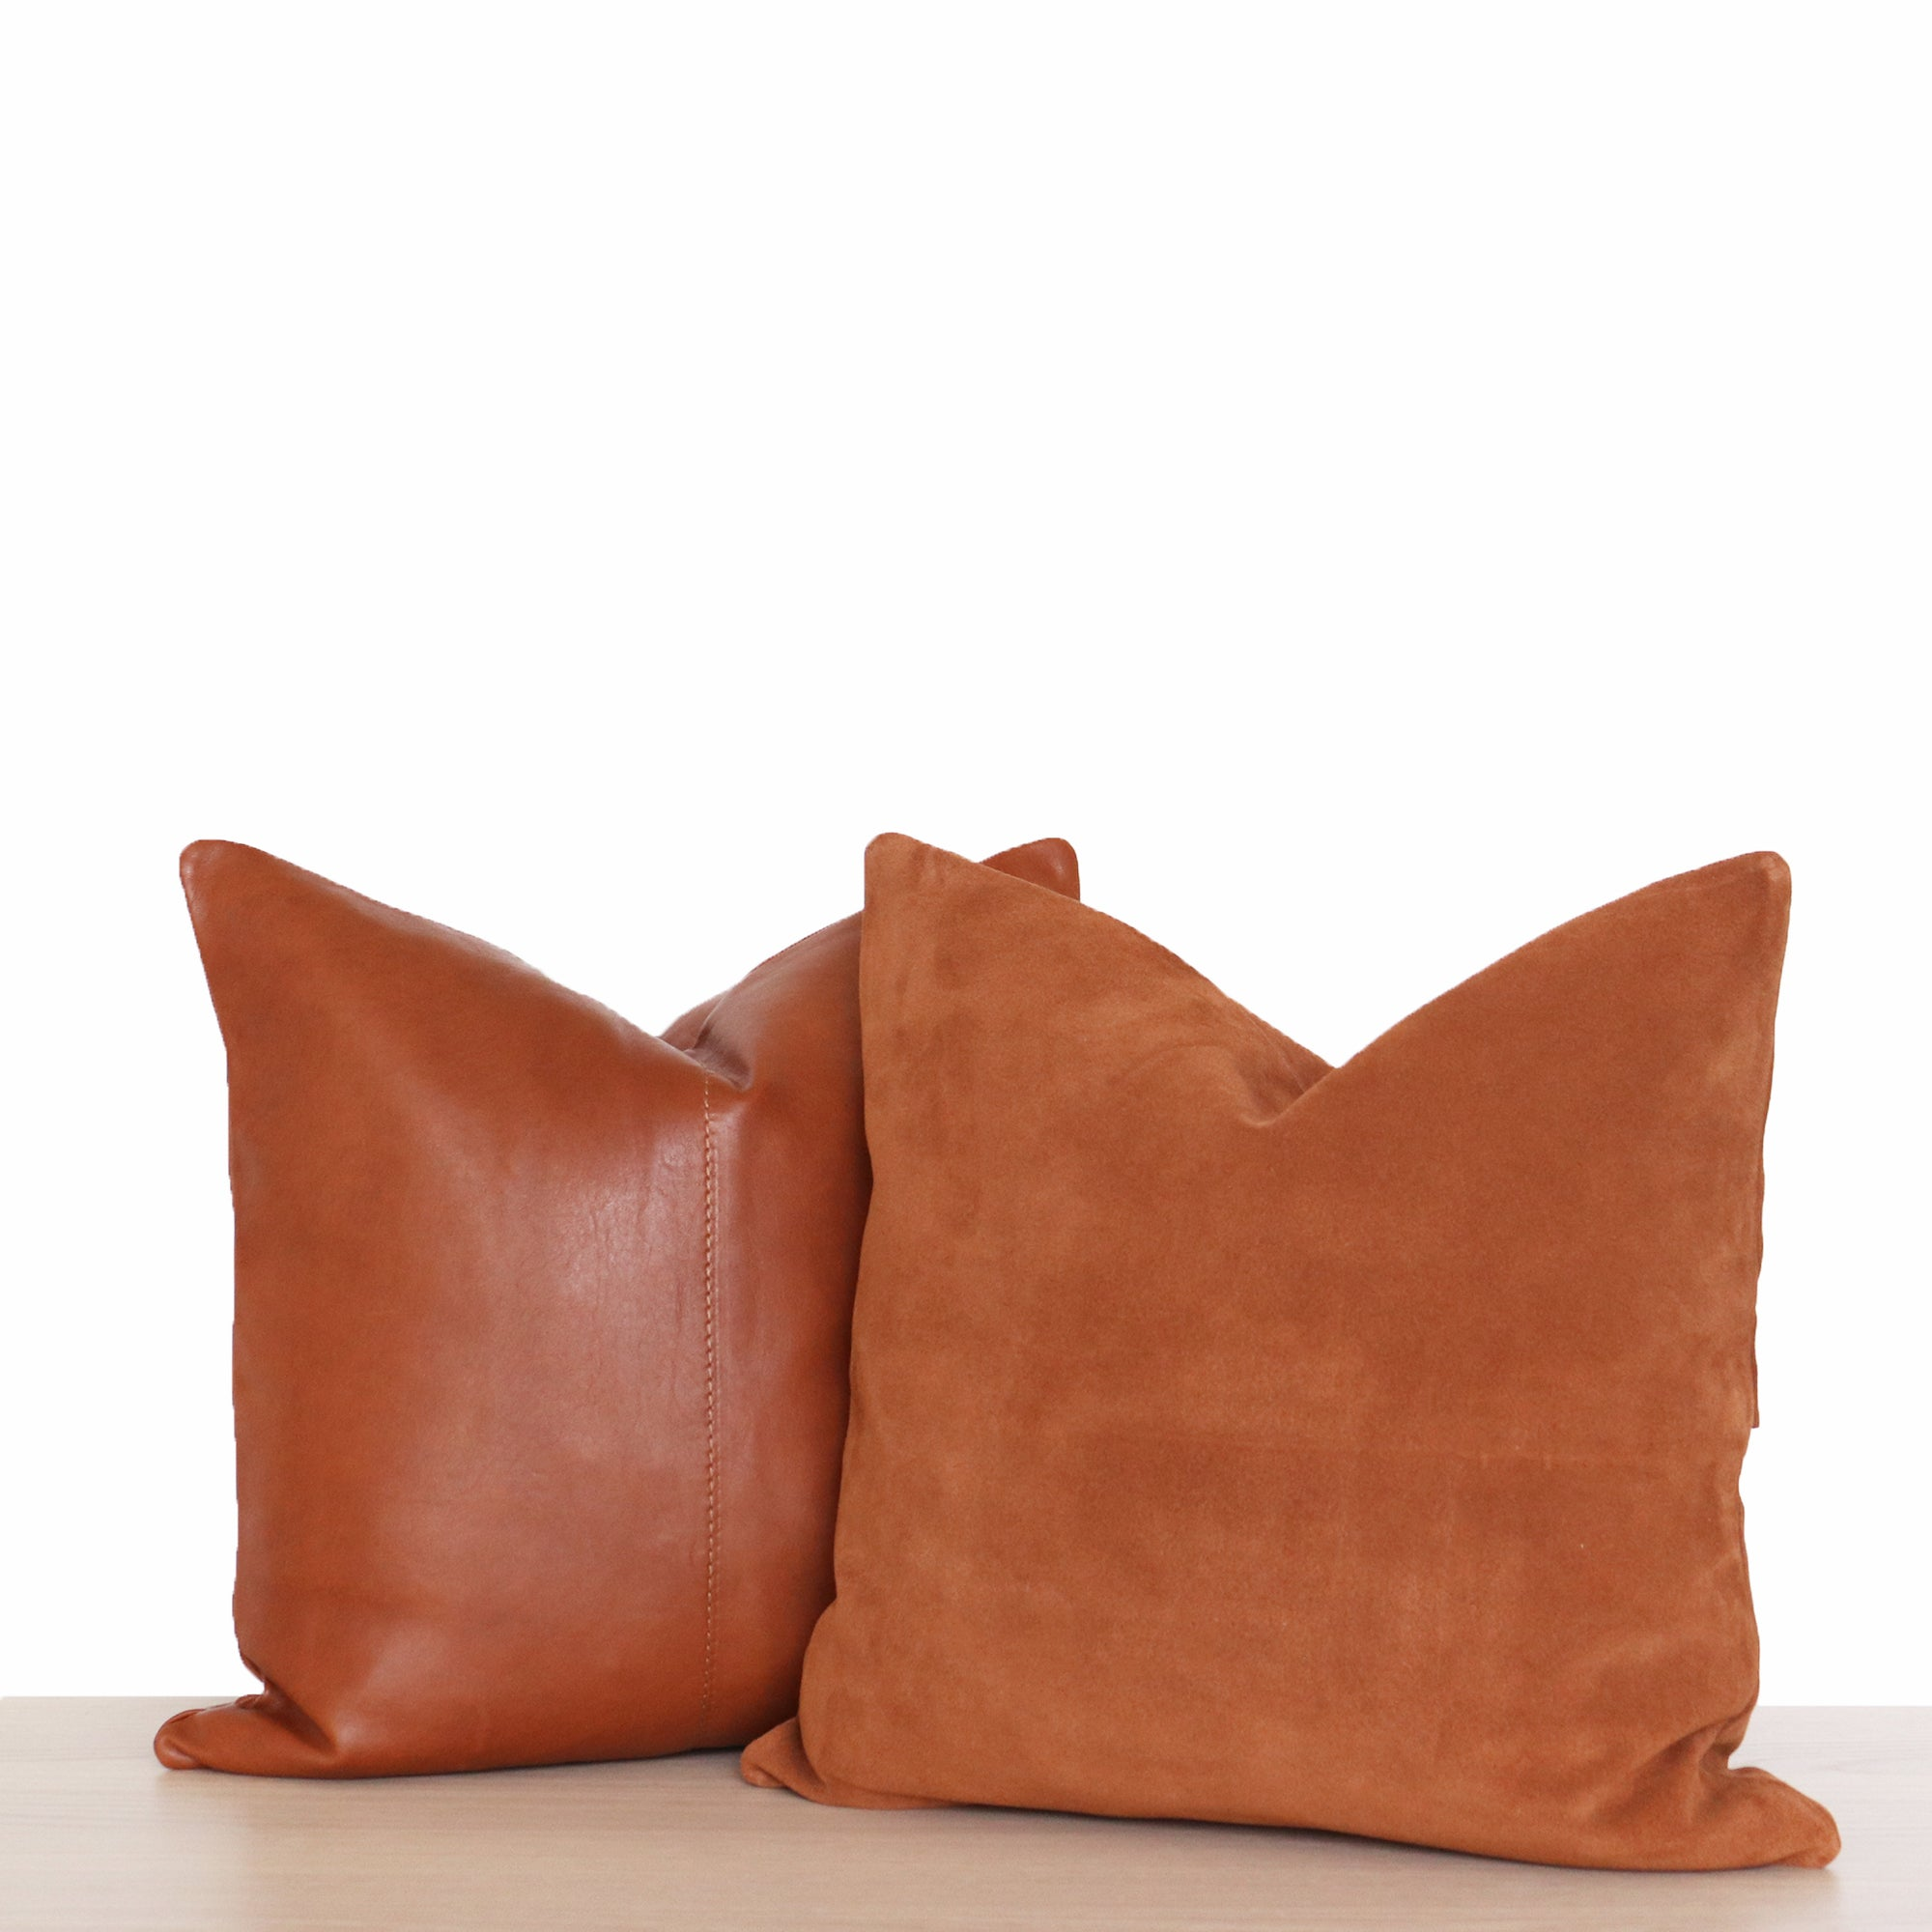 INWOOD Leather Pillow Cover